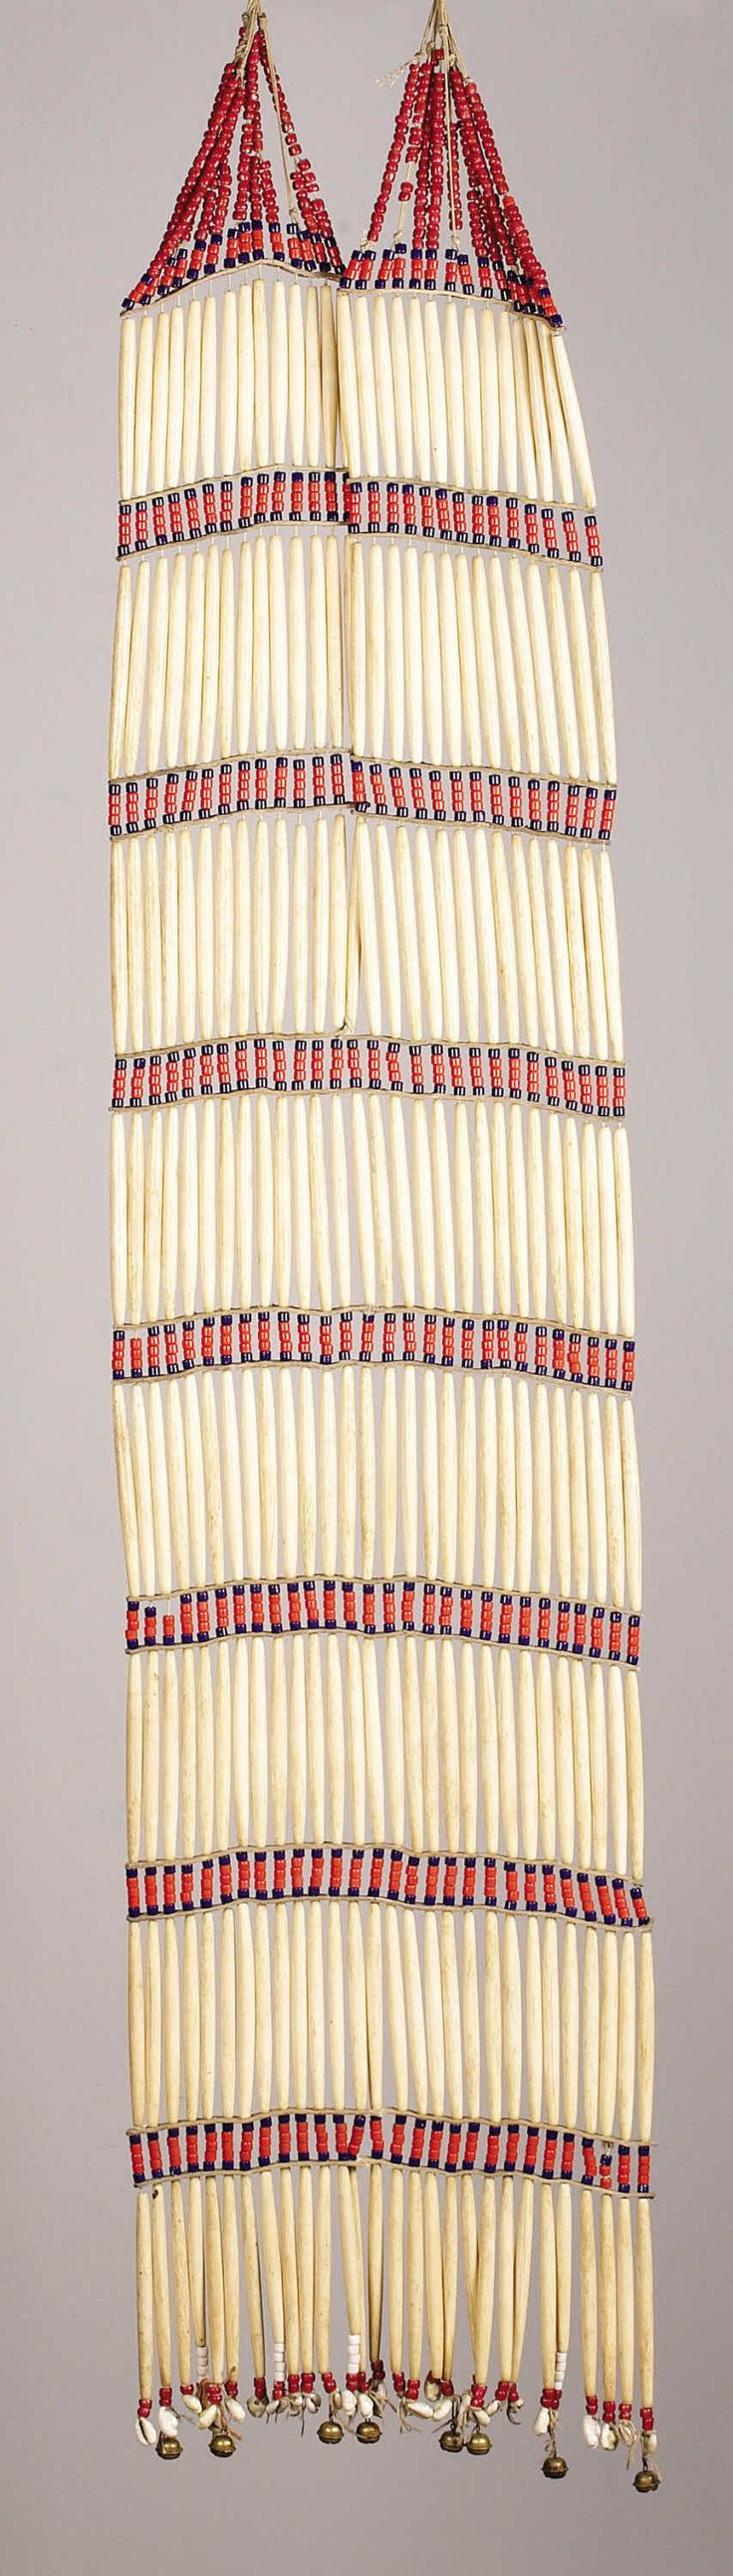 A SIOUX WOMAN'S BREASTPLATE. c. 1900. ... American Indian   Lot #77248   Heritage Auctions